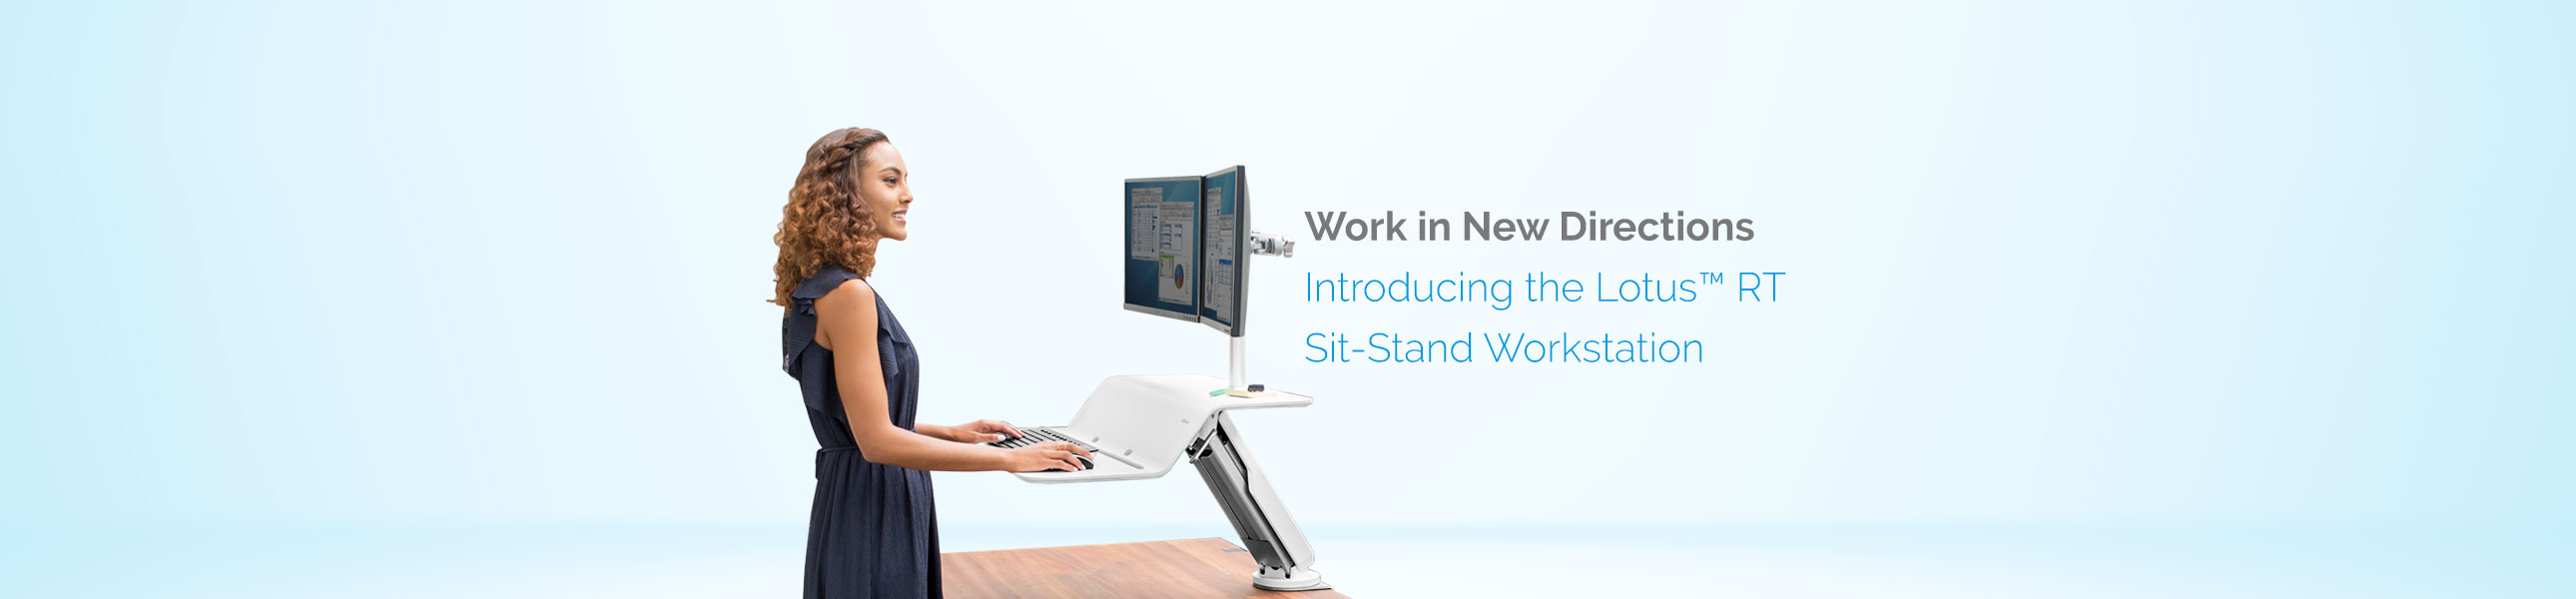 Work in New Directions - Introducing the Lotus™ RT Sit-Stand Workstation